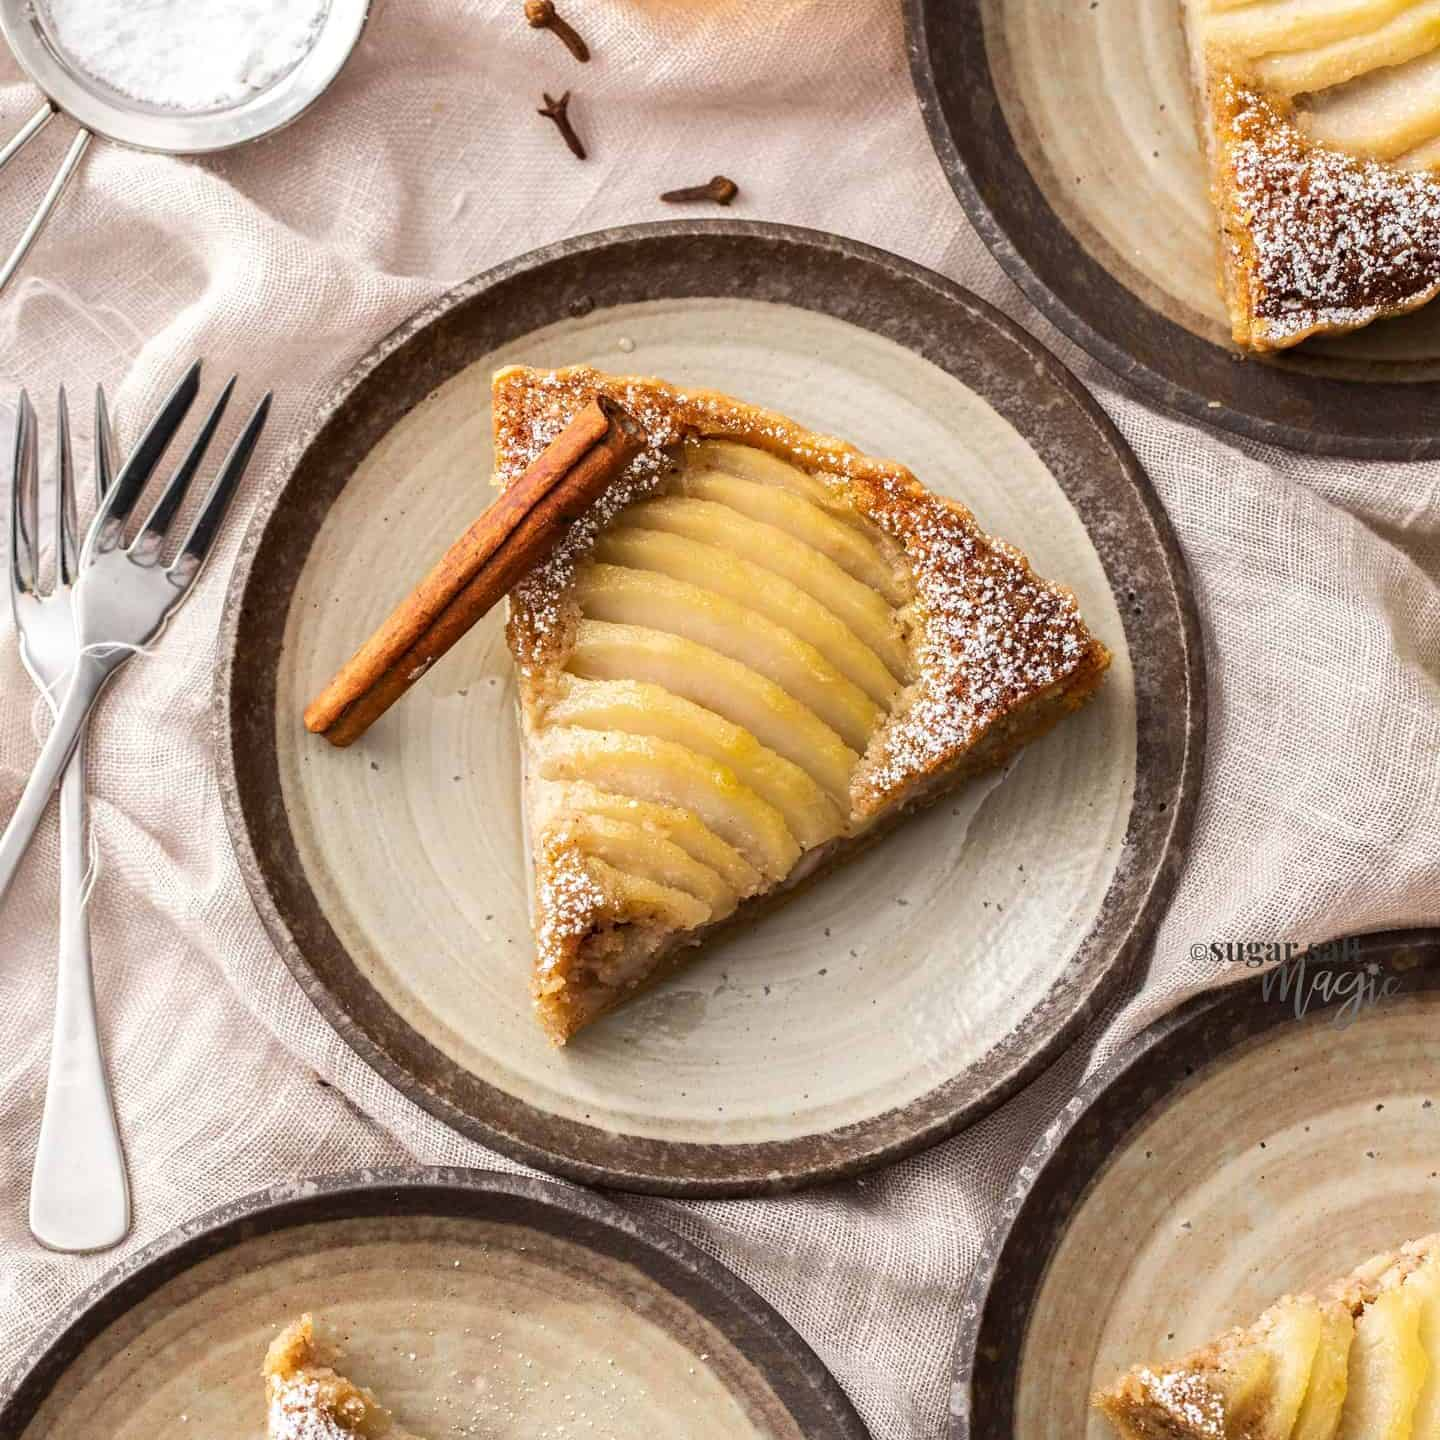 4 small cake plates, each with a slice of pear tart.